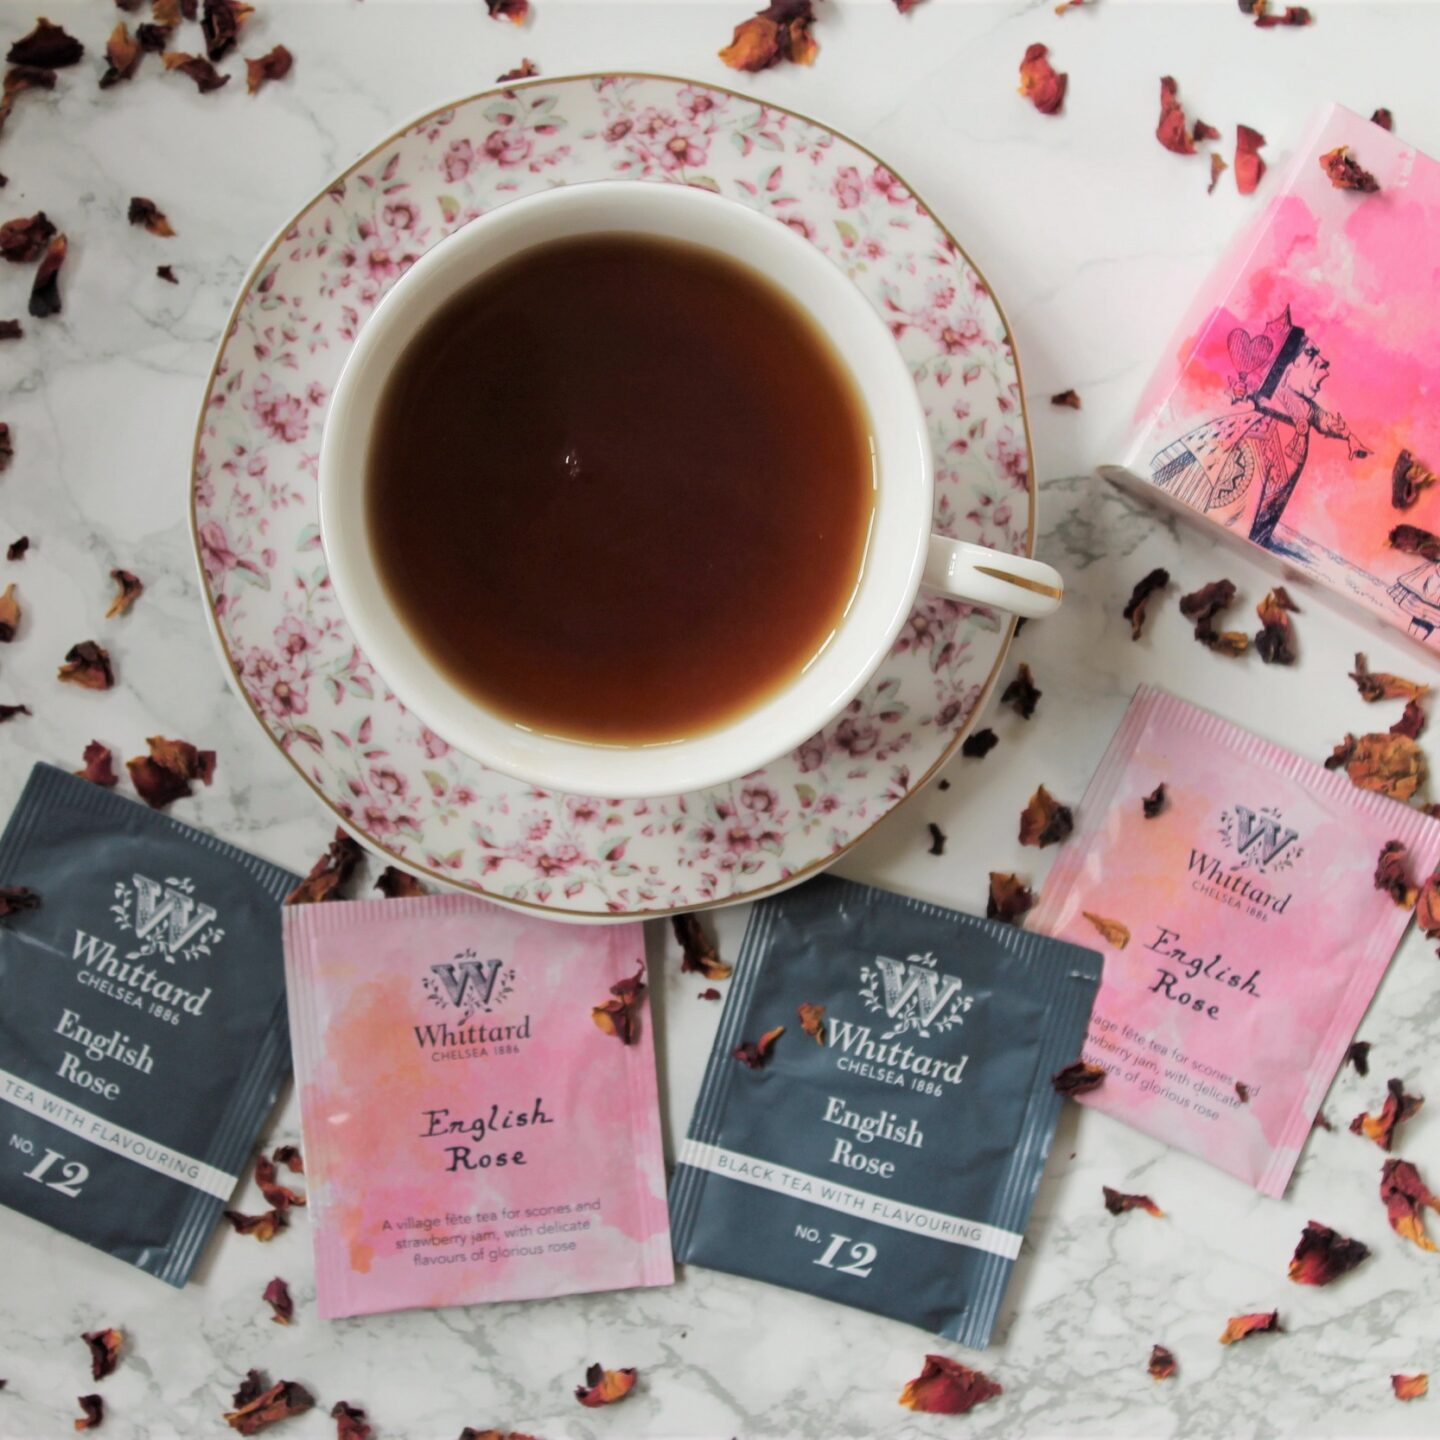 Whittard English Rose Black Tea Review